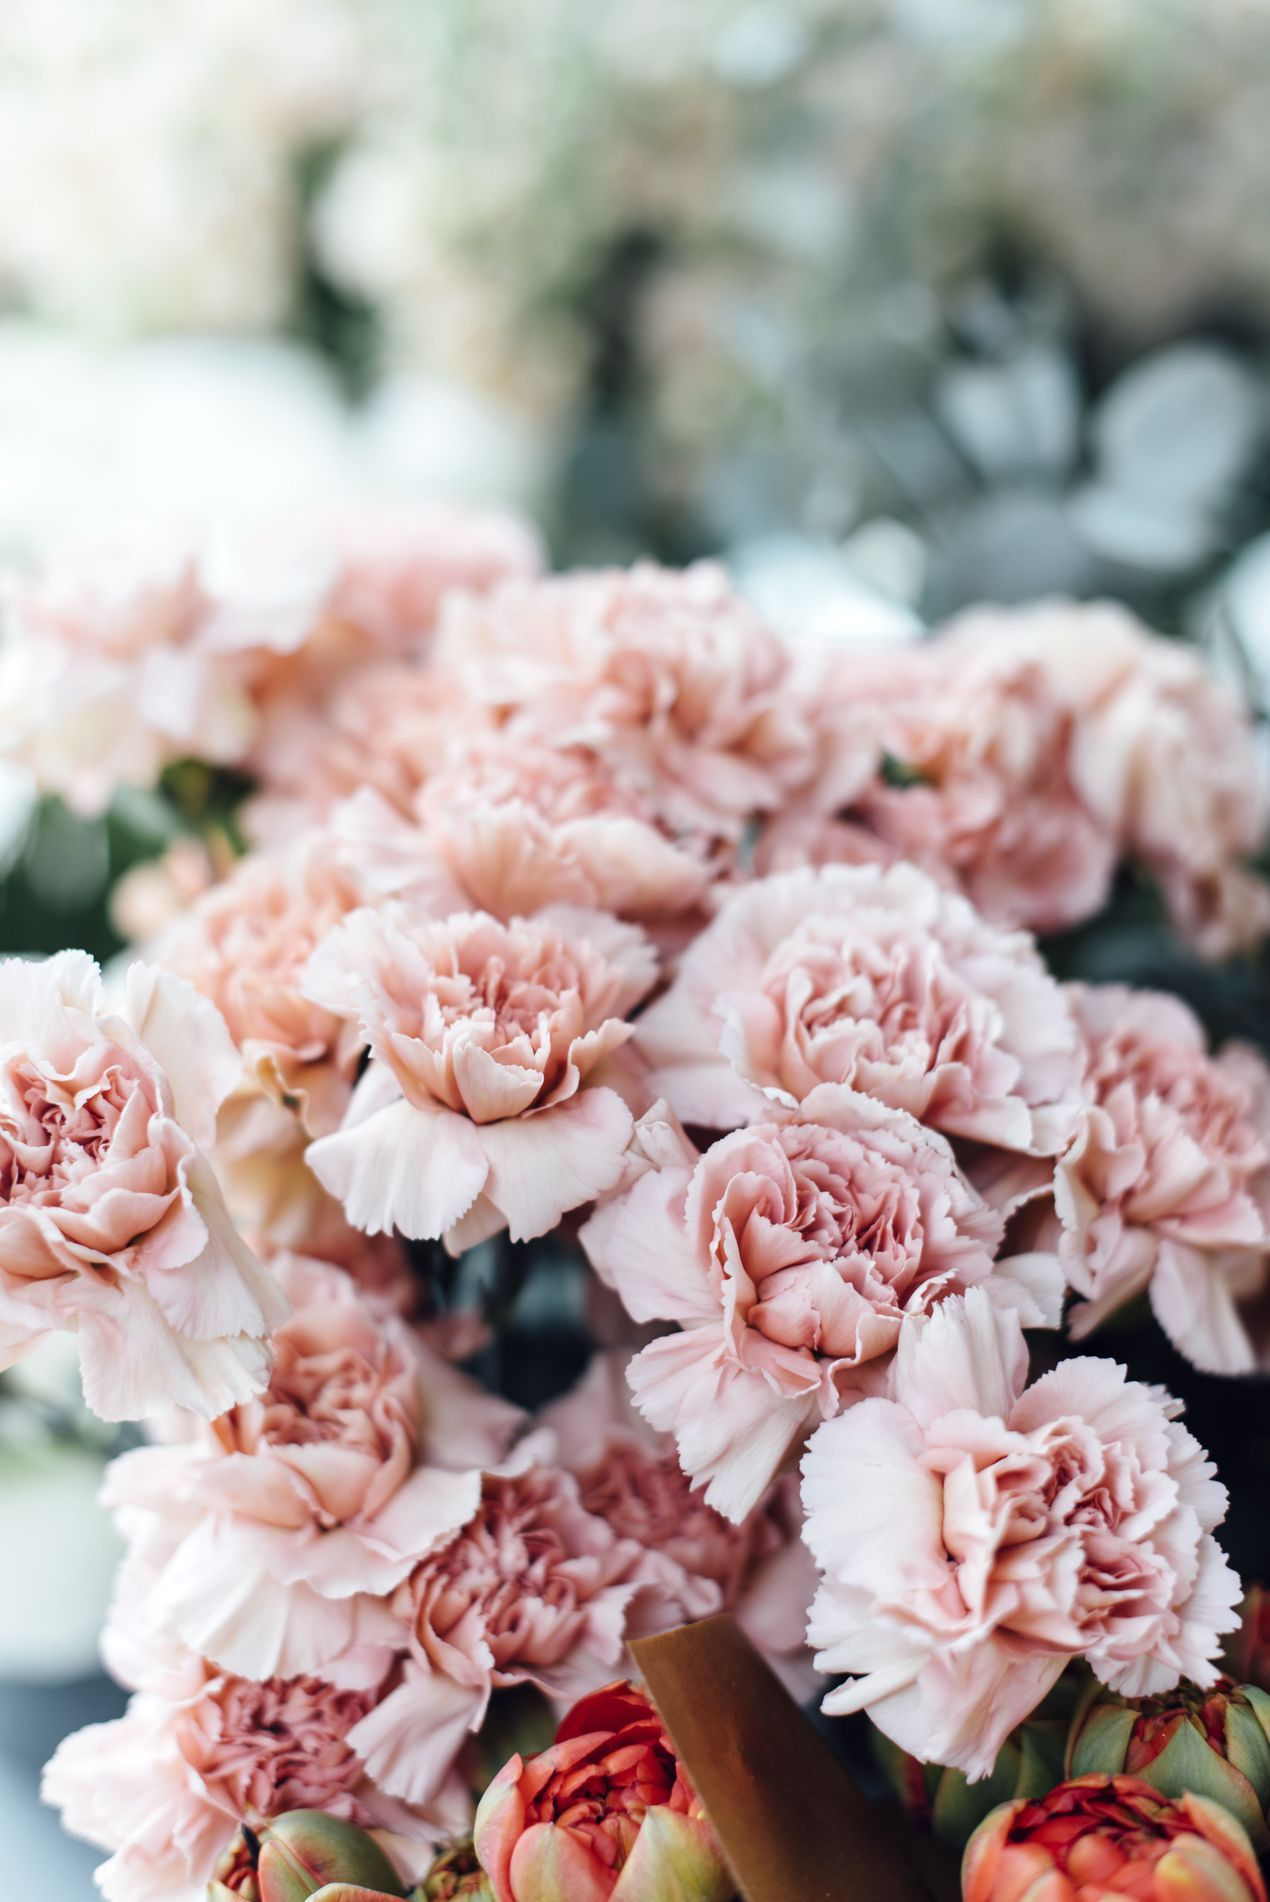 6 Reasons Why The Carnation Deserves A Comeback Different Kinds Of Flowers Flowers Carnation Flower